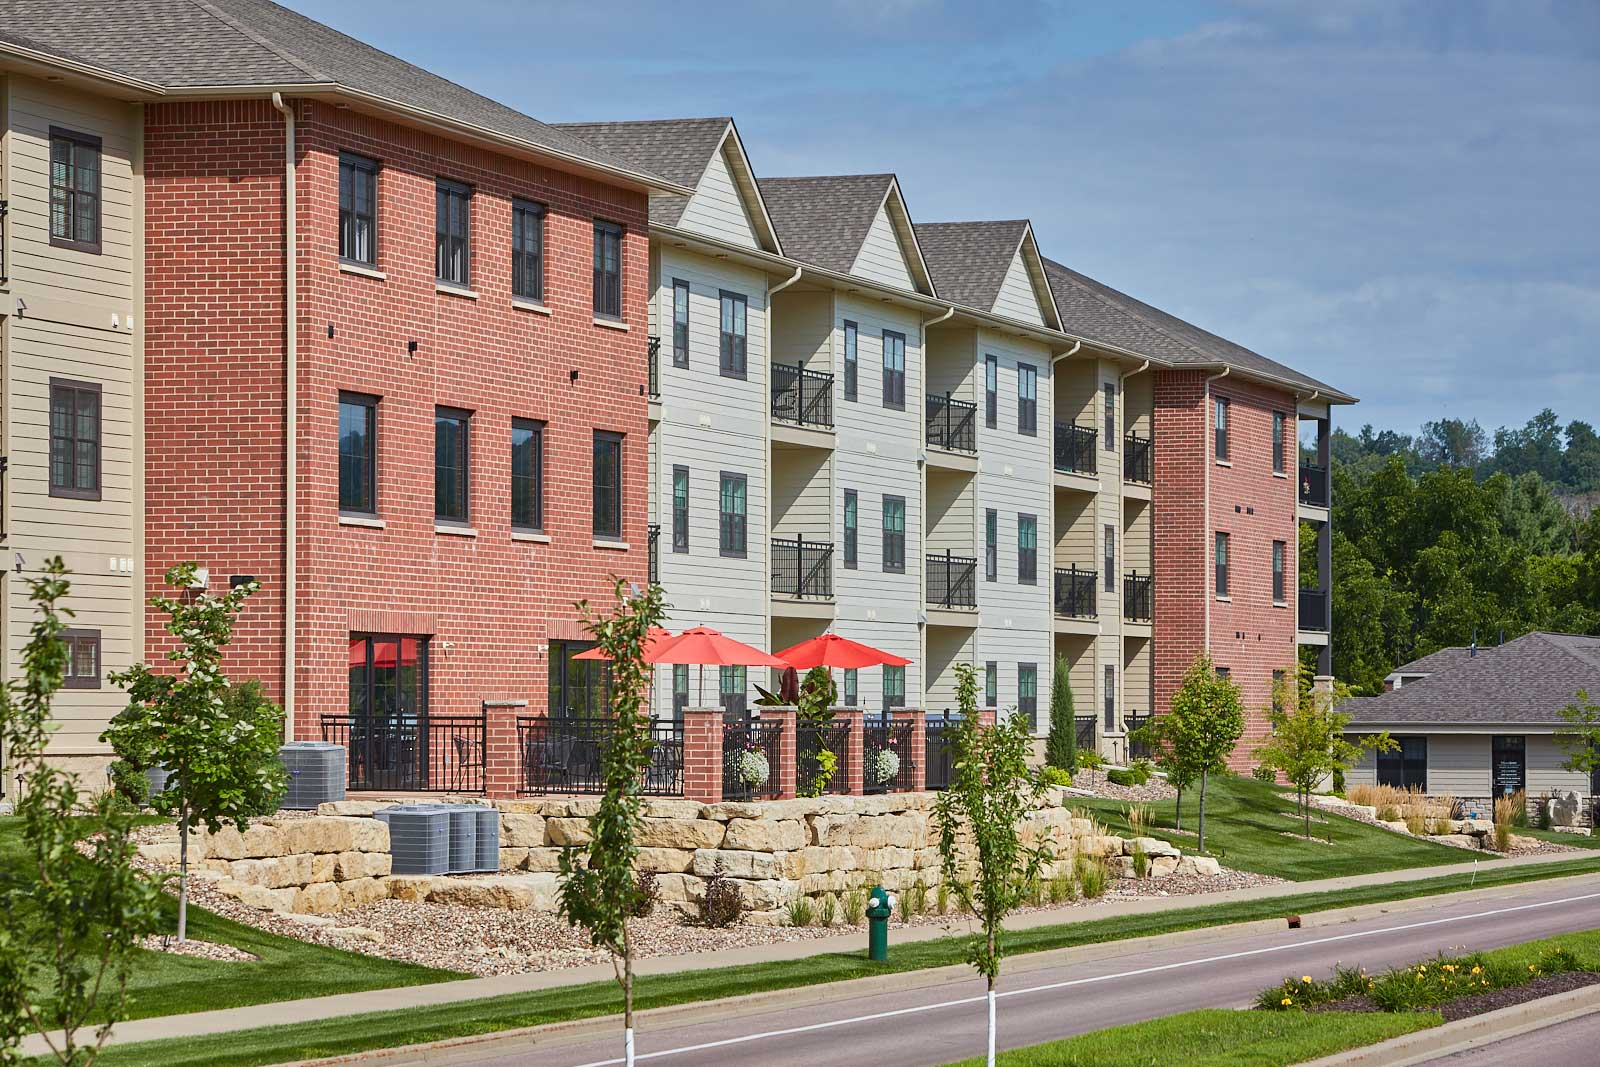 Variety of Concrete Landscape and Masonry Products Brings Luxury Condominium Complex to Life